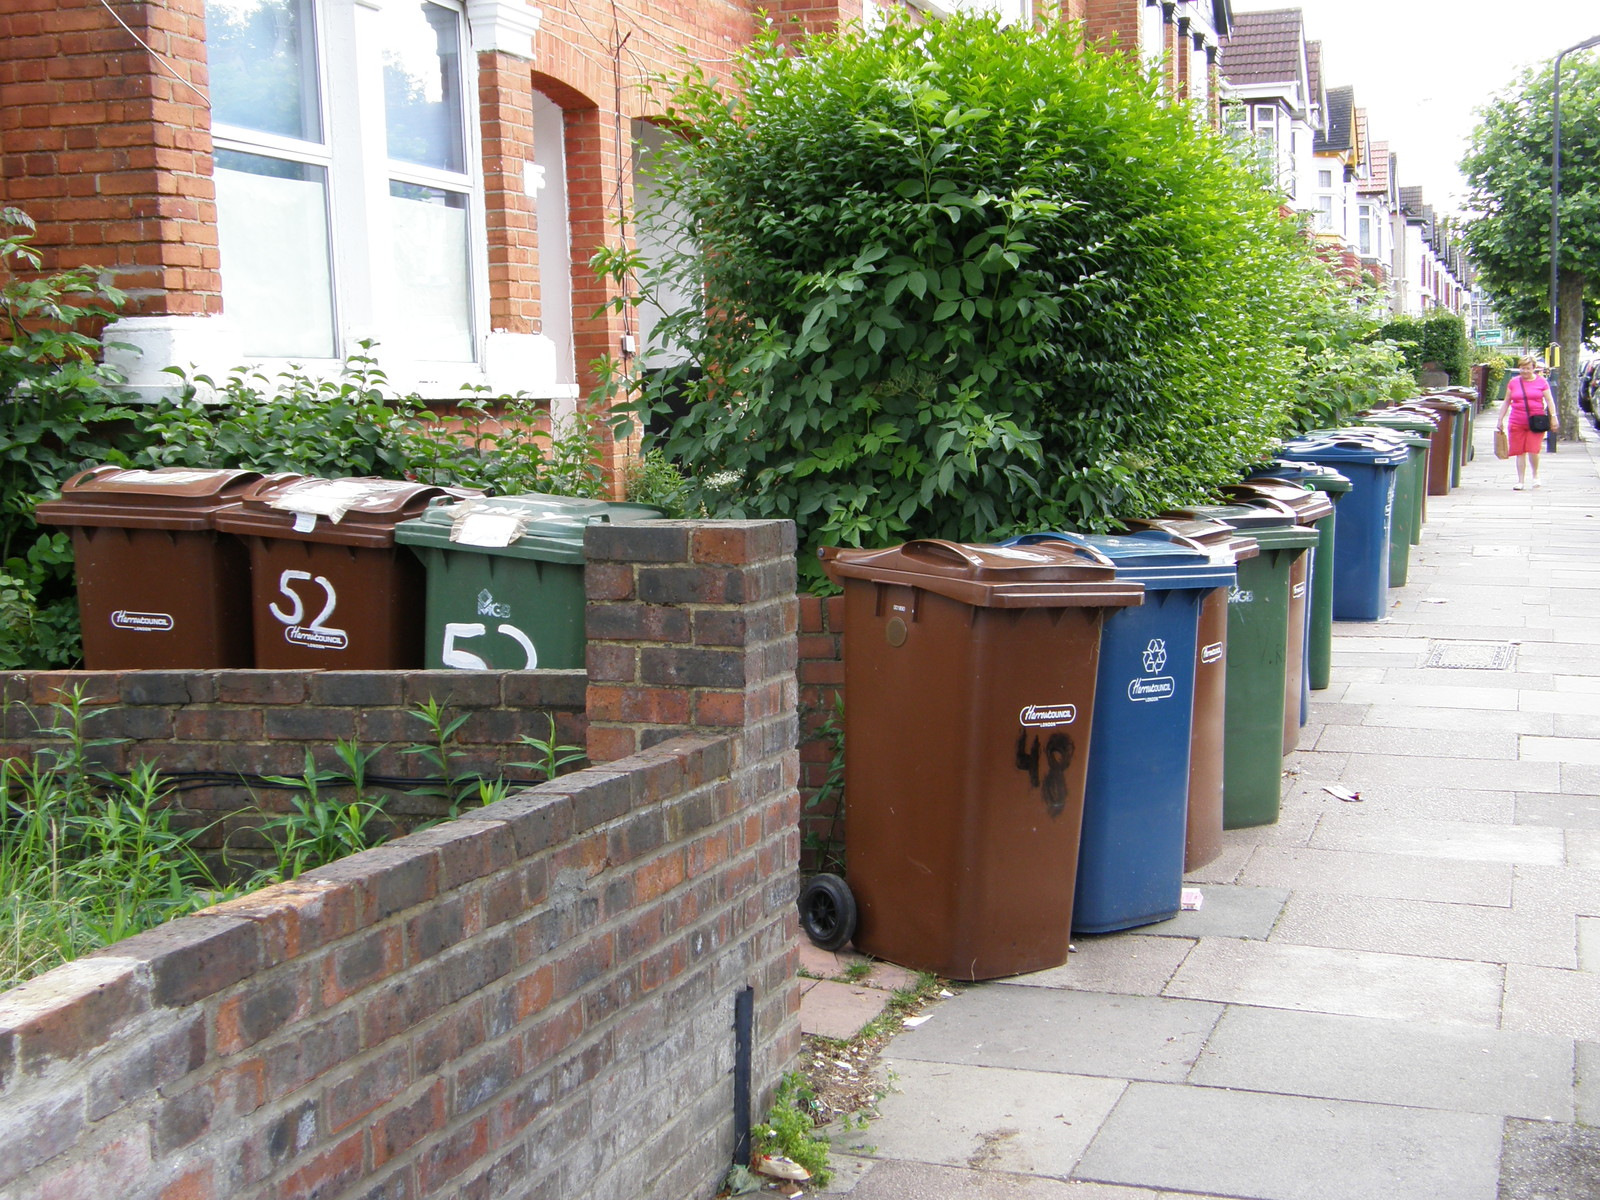 Bin day on Vaughan Road